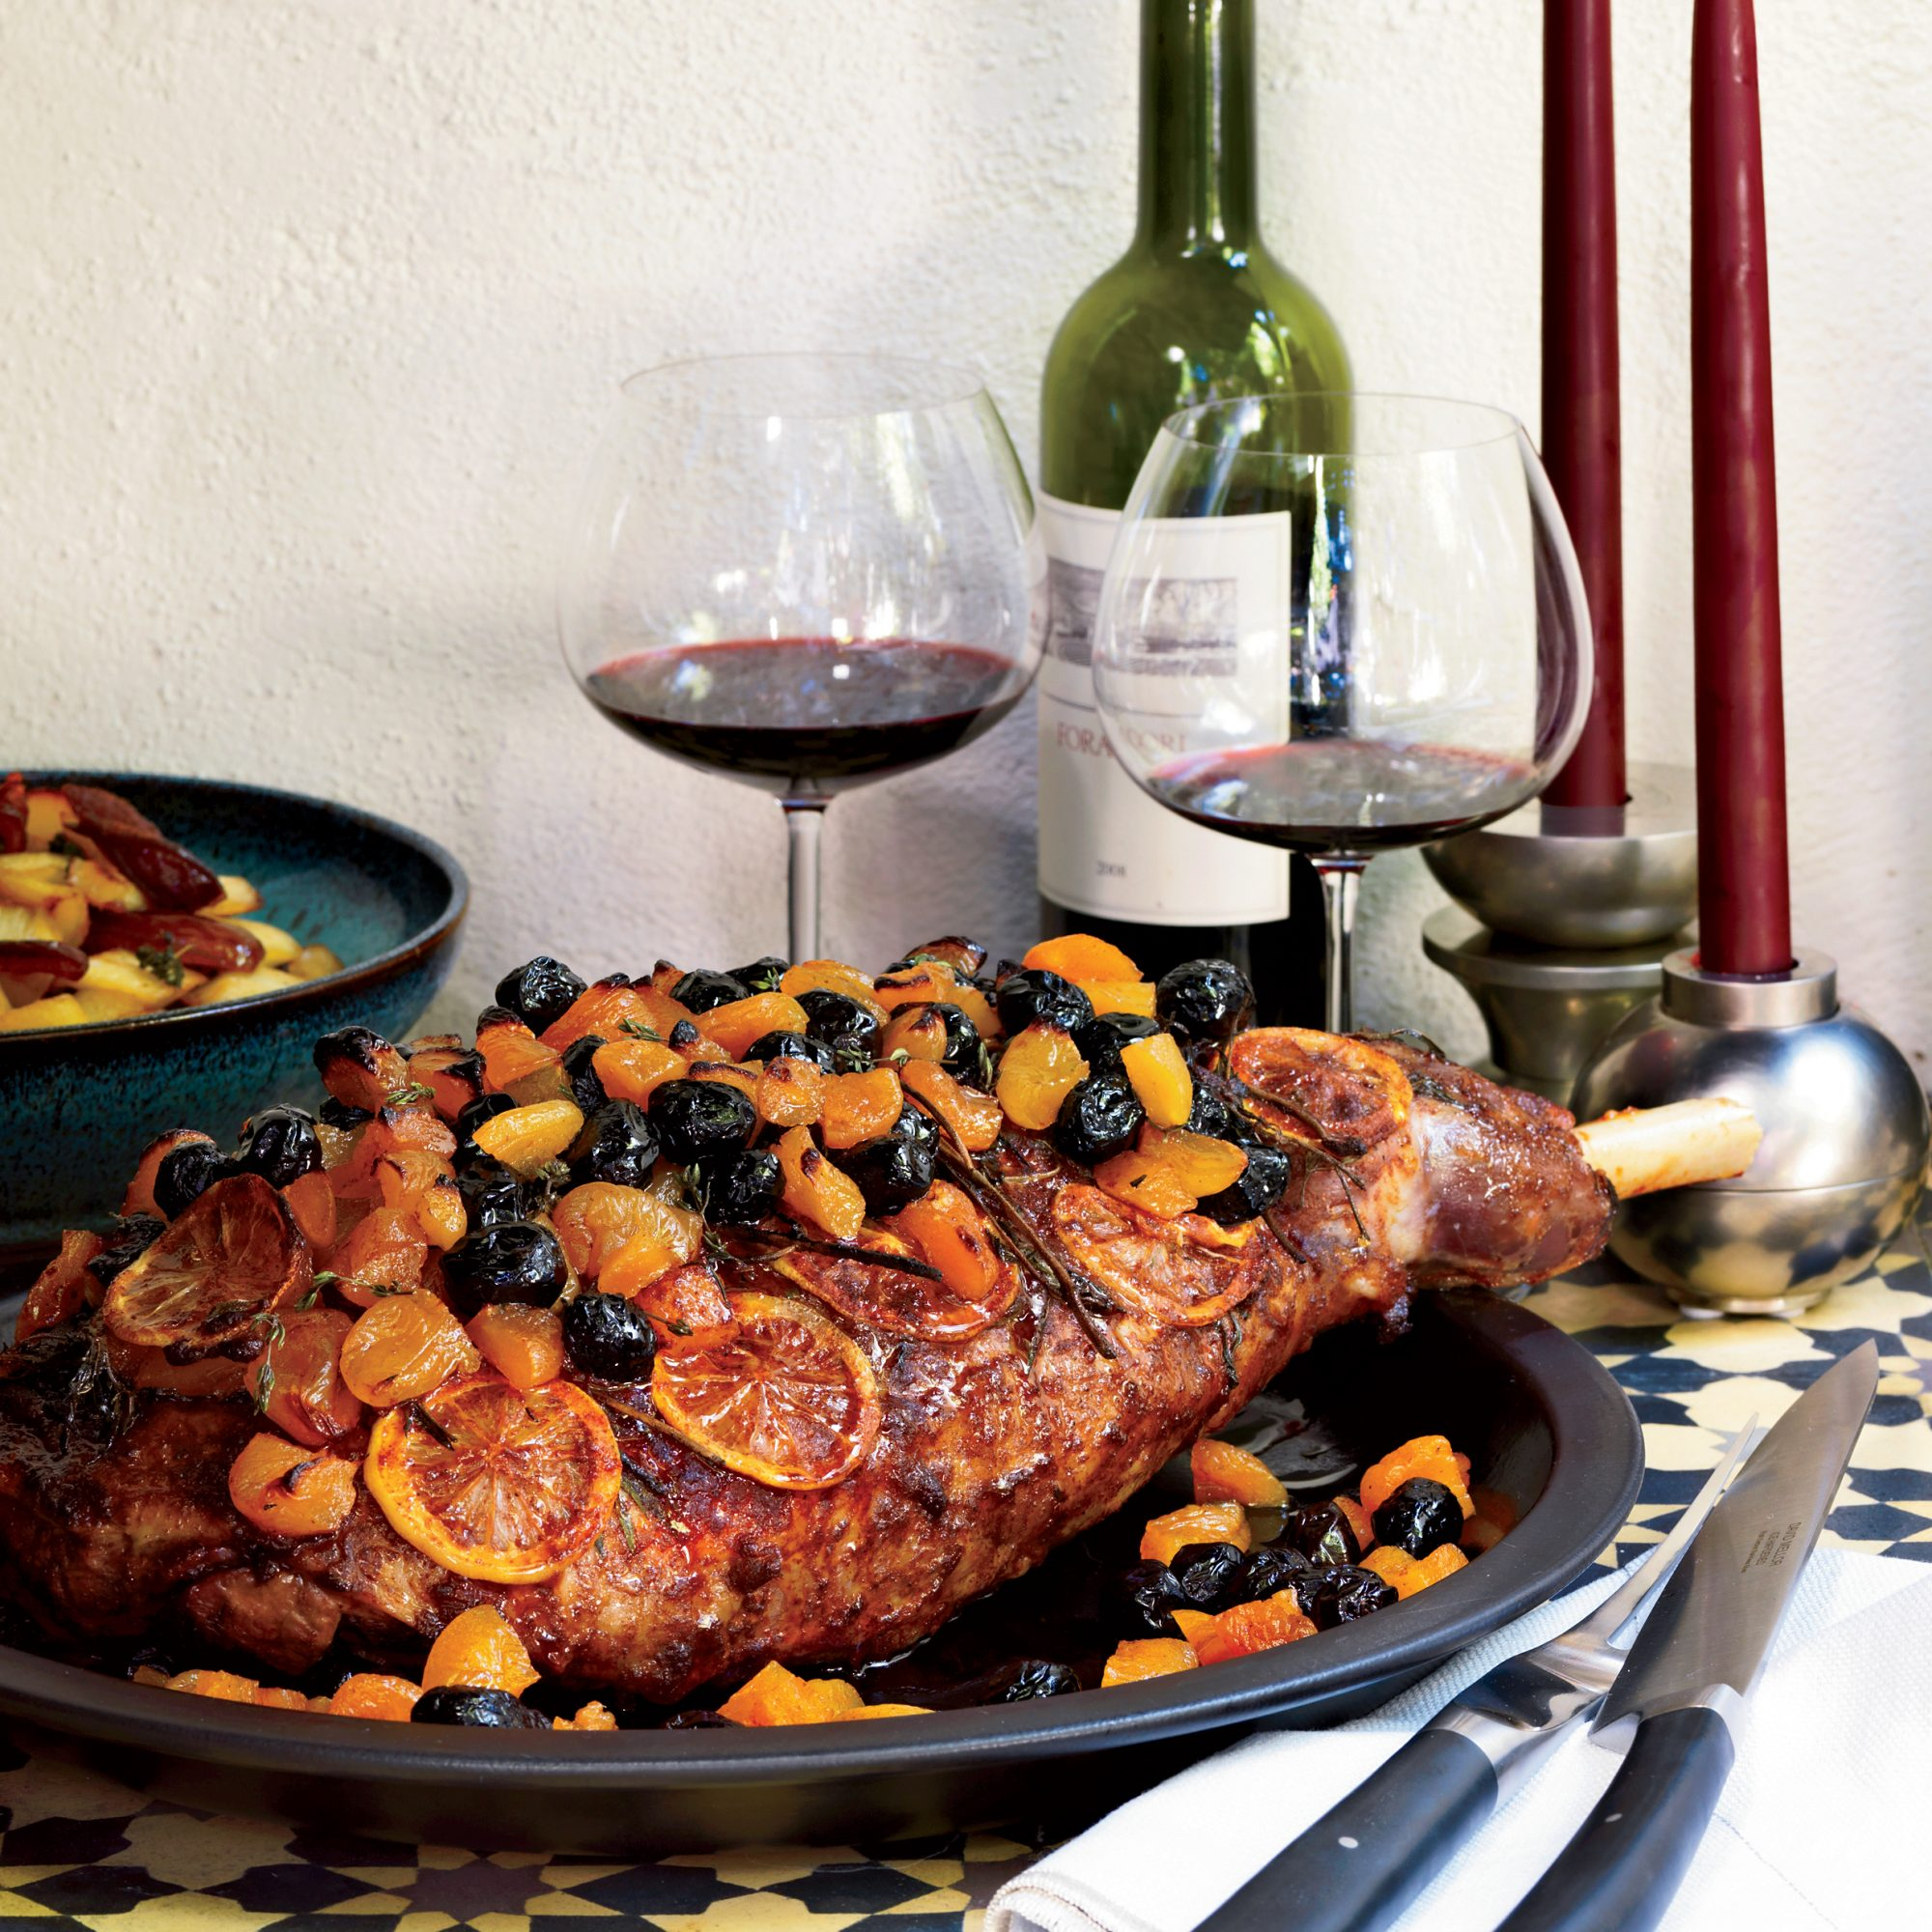 images-sys-201112-r-spiced-leg-of-lamb-with-olives-apricots-and-lemons.jpg